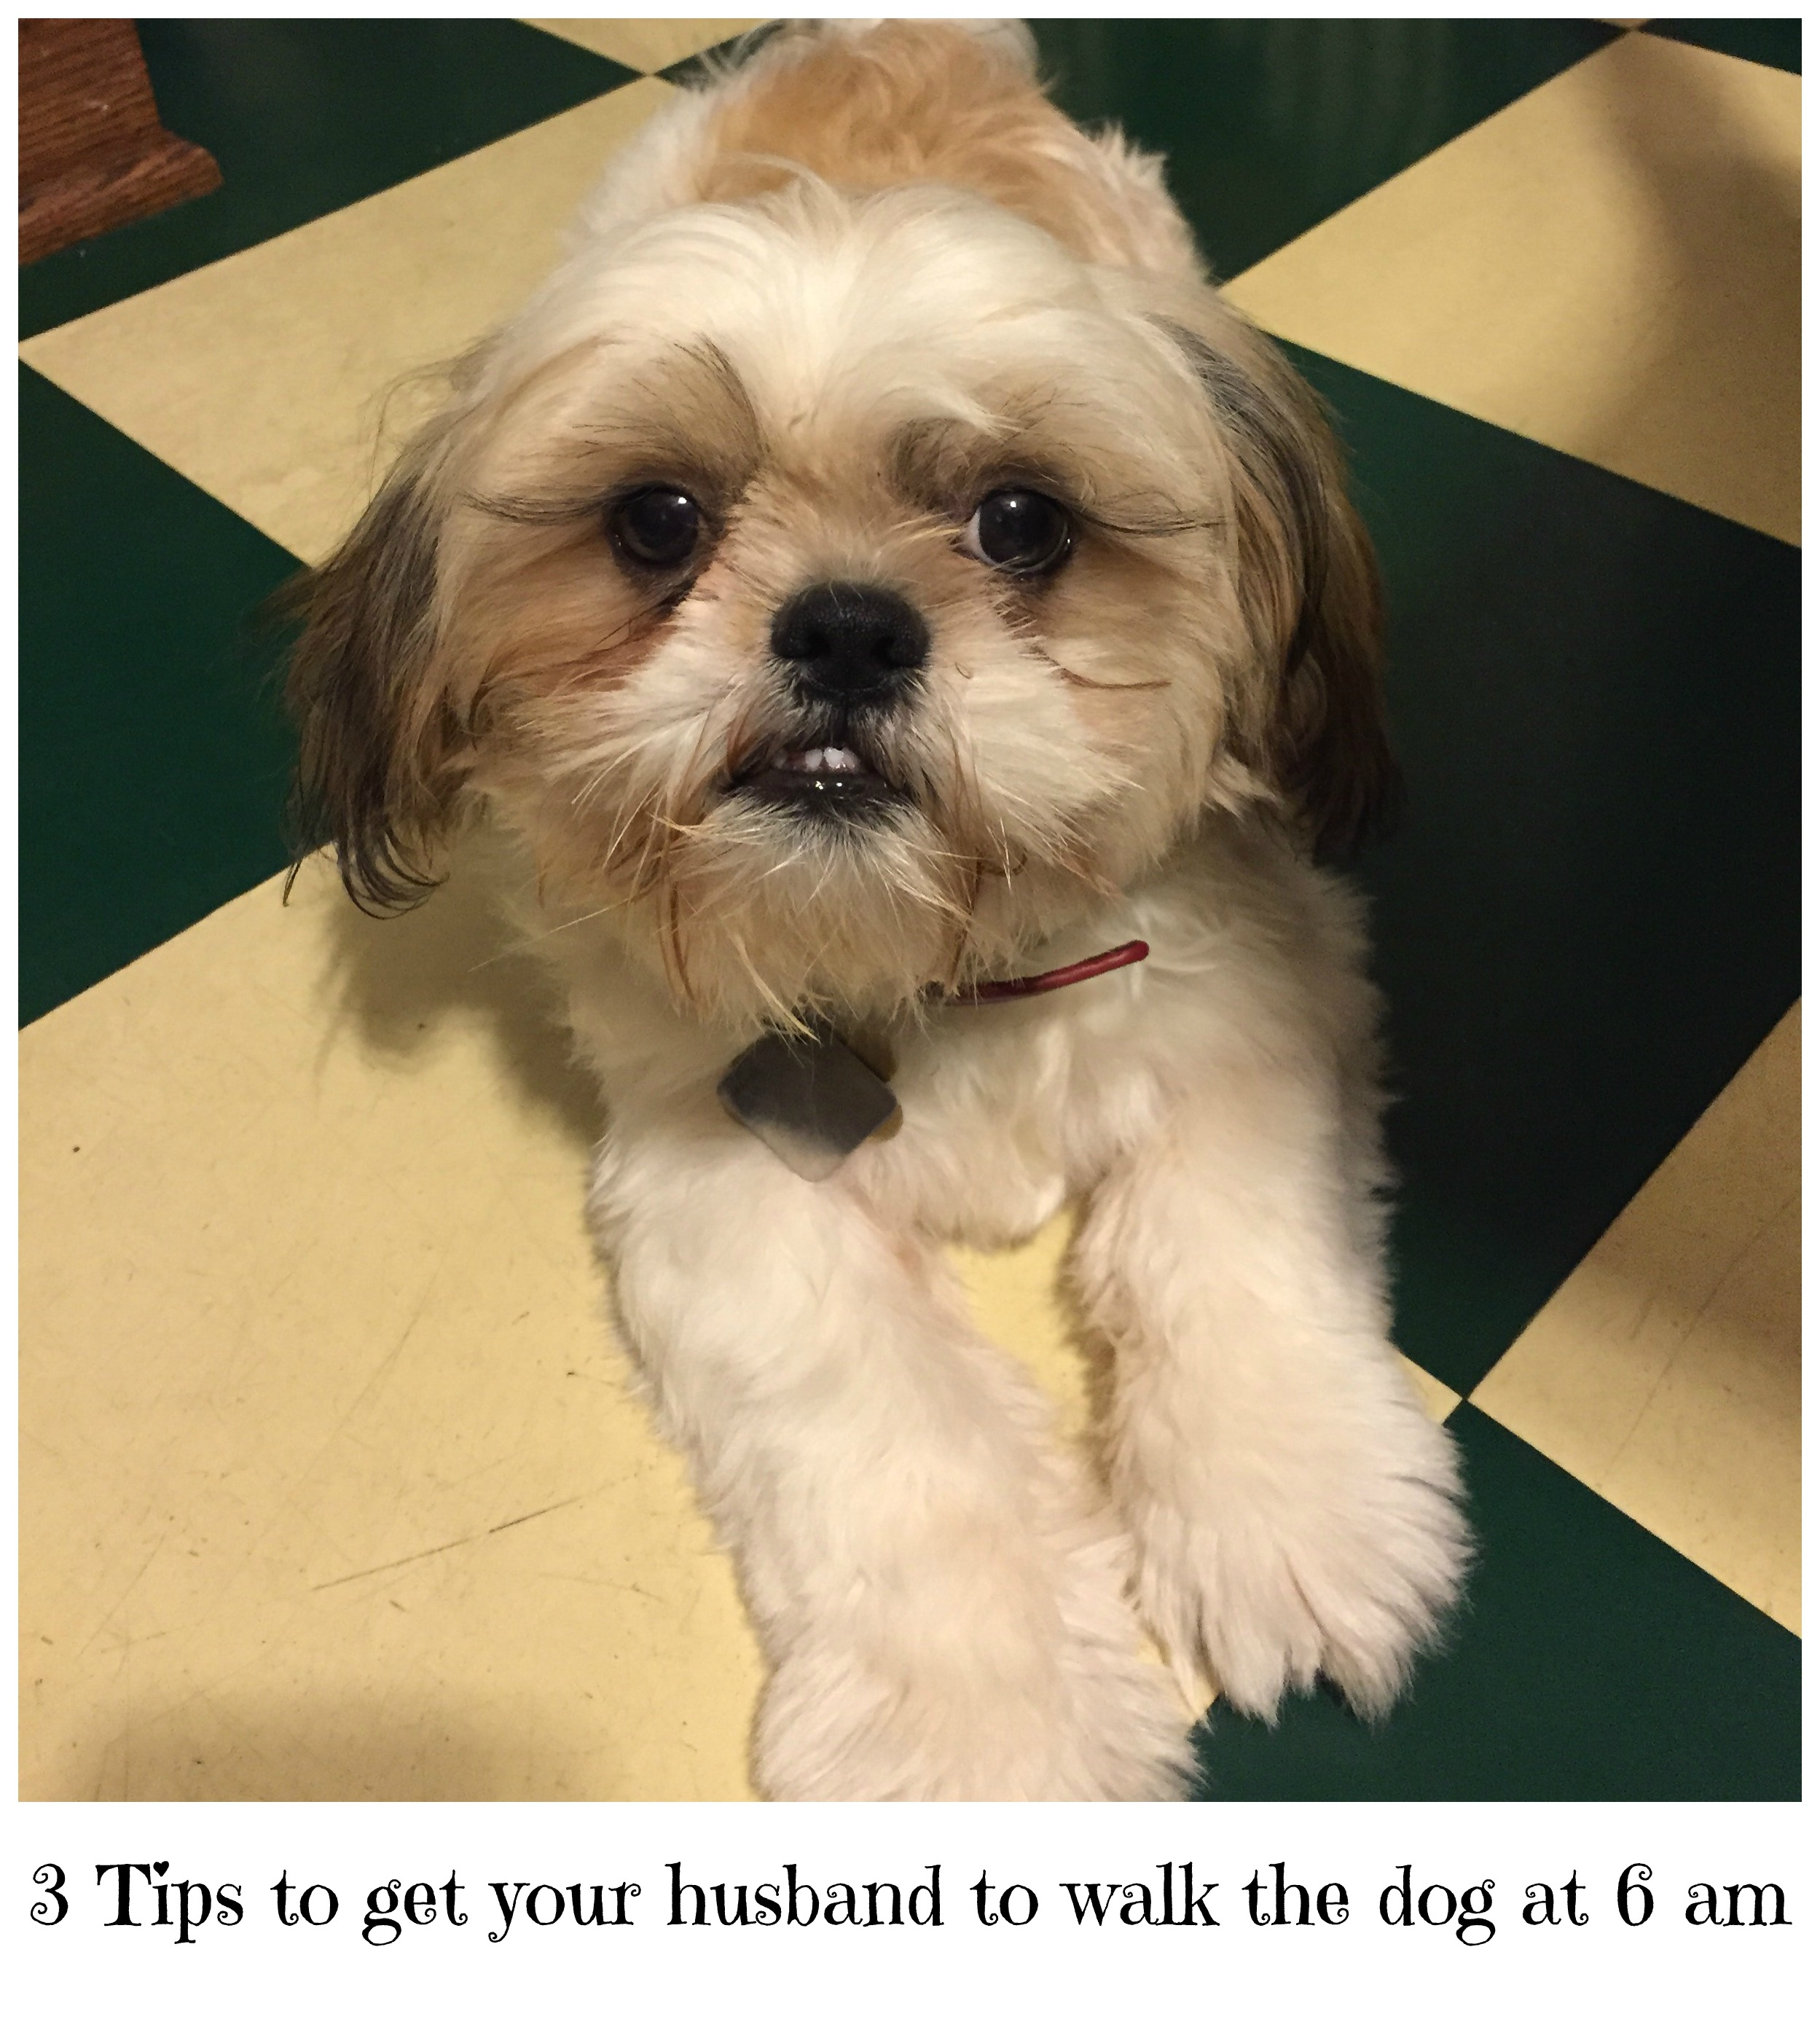 3 Tips to get your husband to walk the dog at 6 am